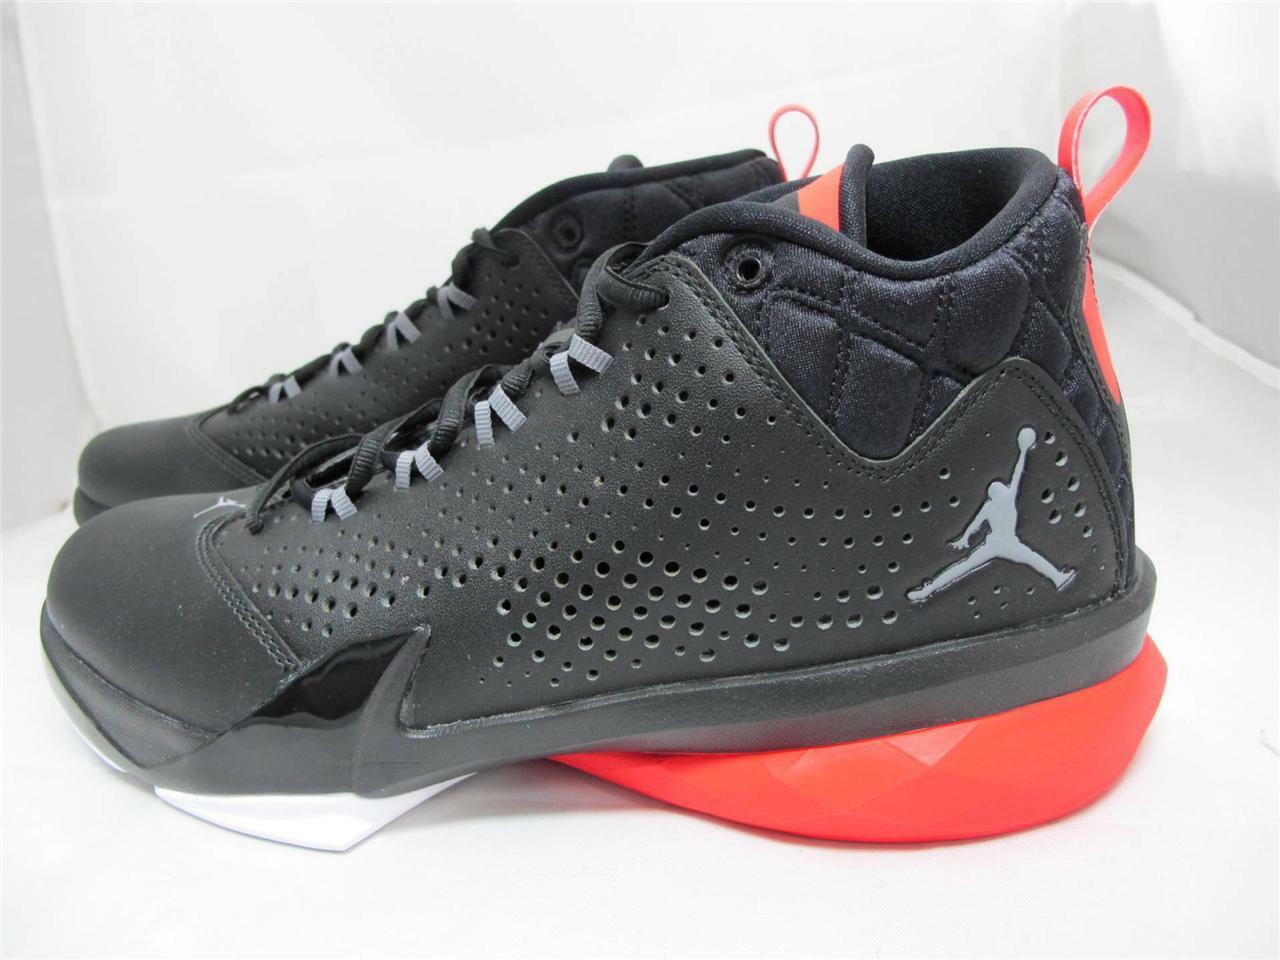 NEW MEN'S jordan flight time 14.5 654272-023